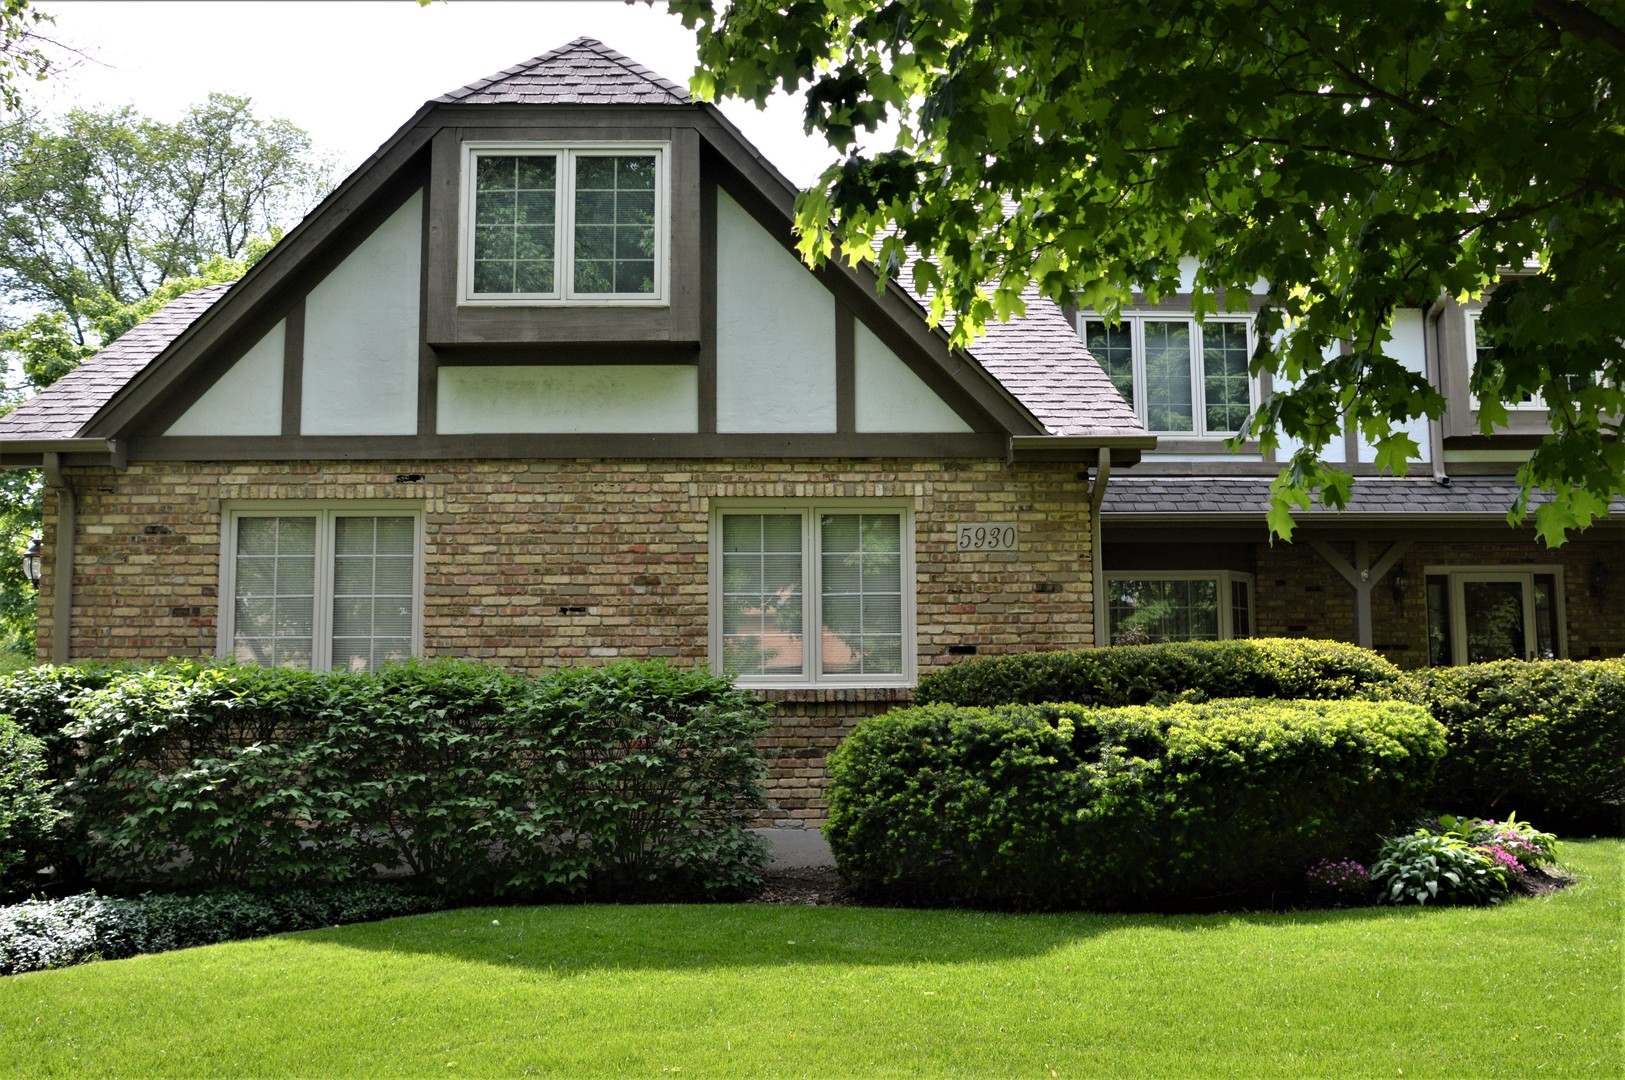 Photo for 5930 Hillcrest Court, Downers Grove, IL 60516 (MLS # 10536522)